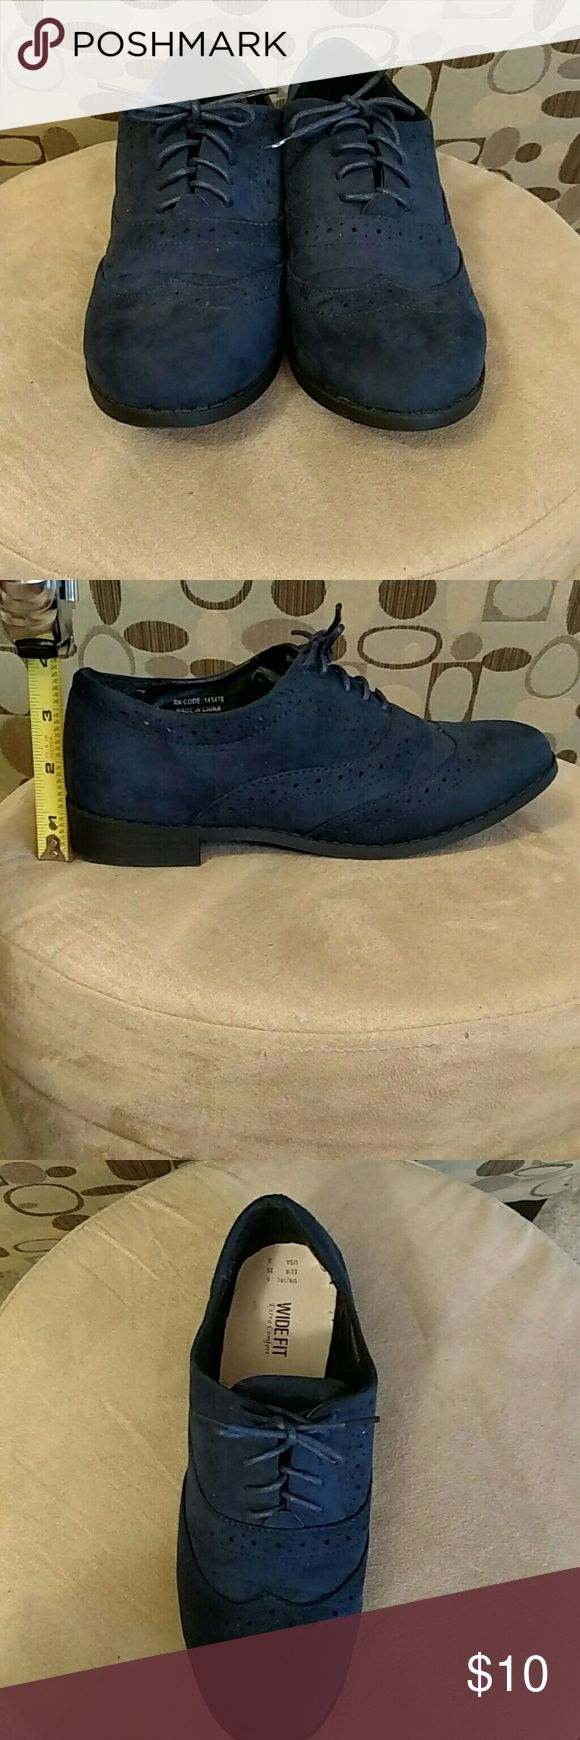 Primark faux suede Oxfords? 8W These Oxfords were worn once. They have a soft suede feel. The sole is 1 inch. True navy color. Primark Shoes Flats & Loafers